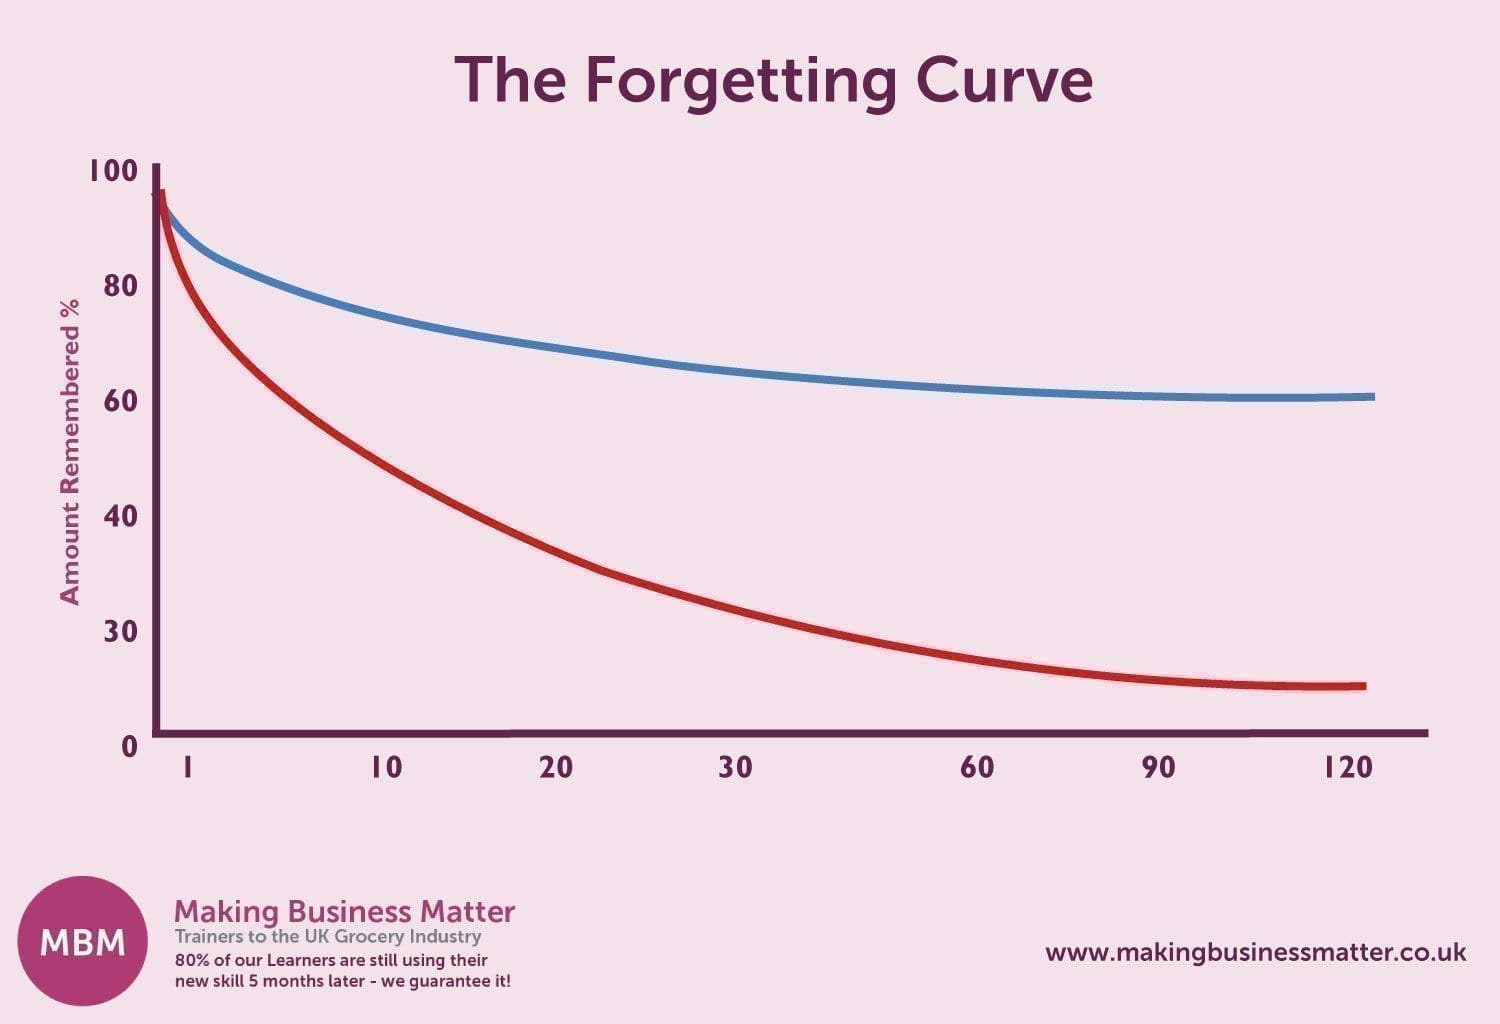 A graph with a red and blue line titles The Forgetting Curve